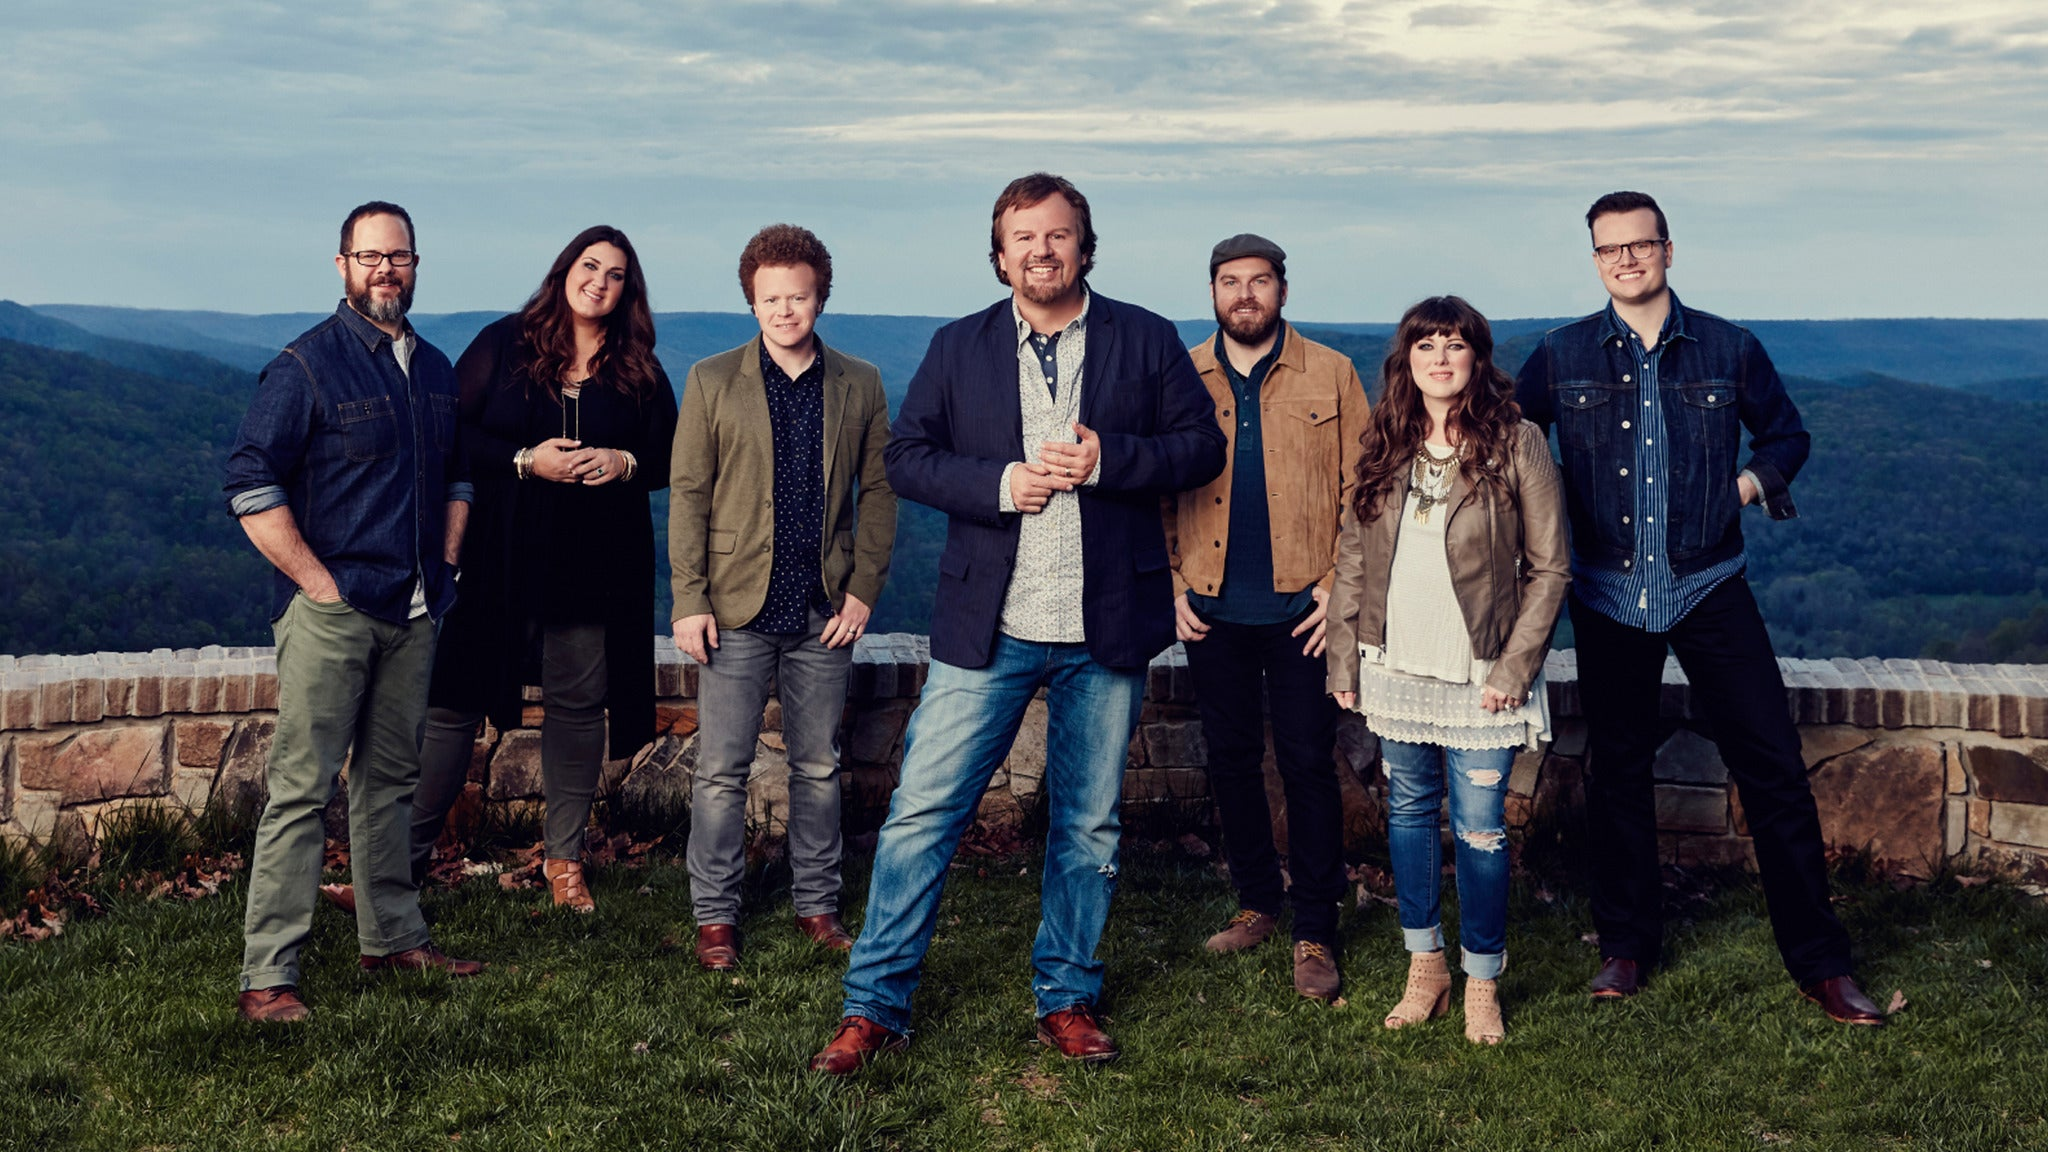 Casting Crowns: The Very Next Thing Tour at Verizon Arena